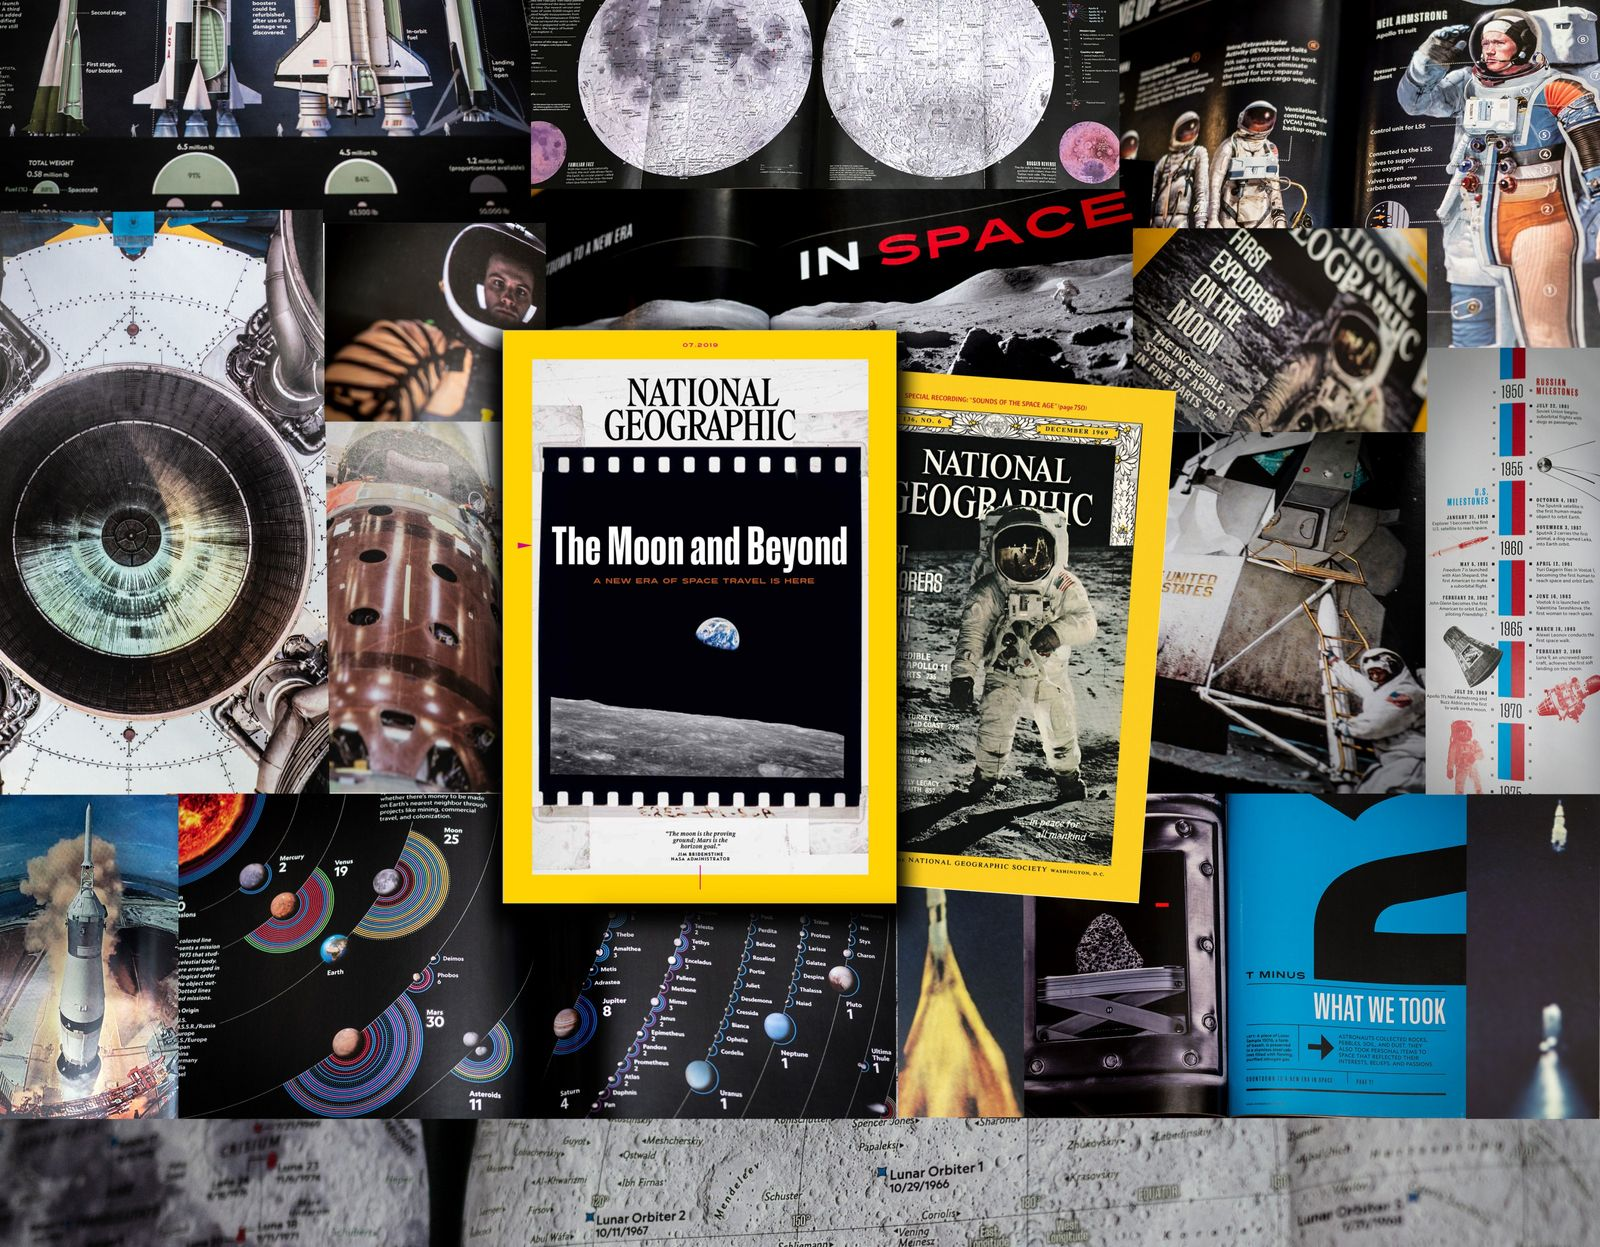 The Moon Landing at 50: A Special Edition of National Geographic